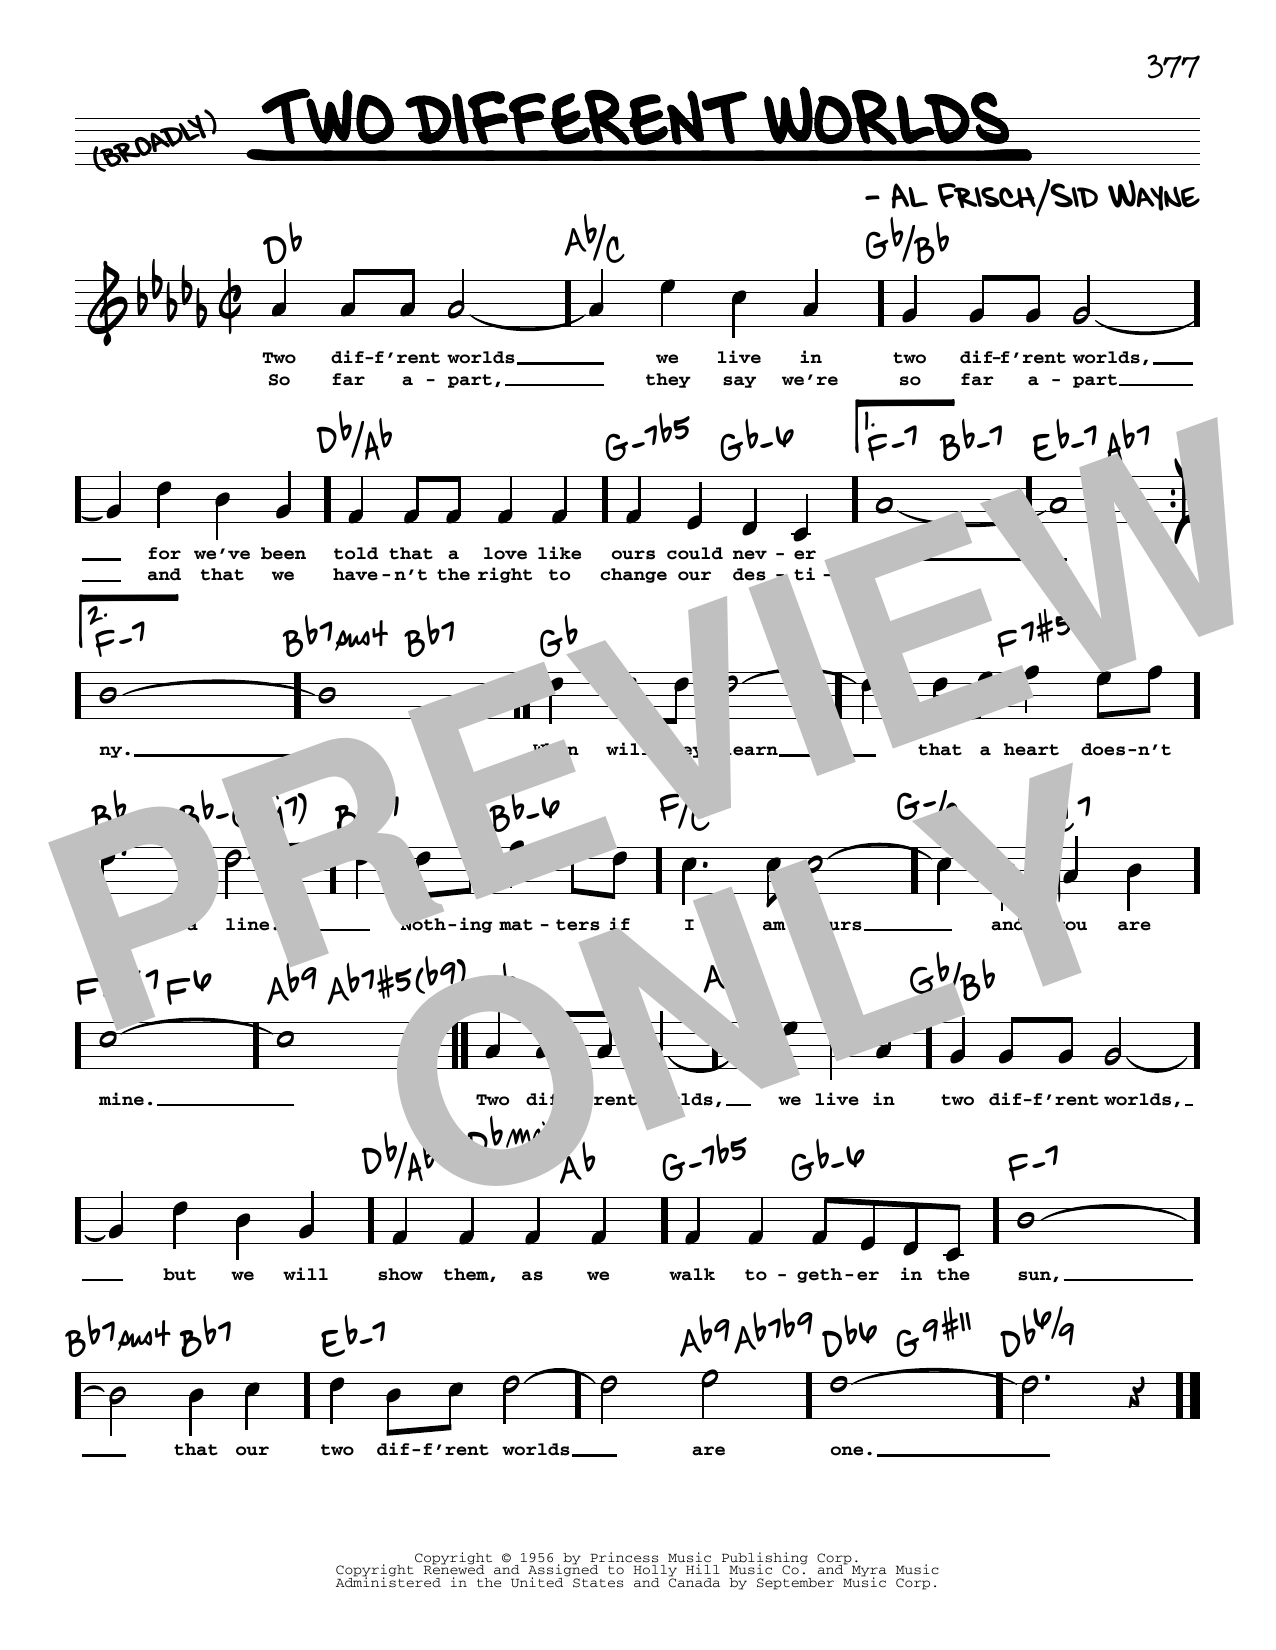 Sid Wayne Two Different Worlds (High Voice) sheet music notes and chords. Download Printable PDF.